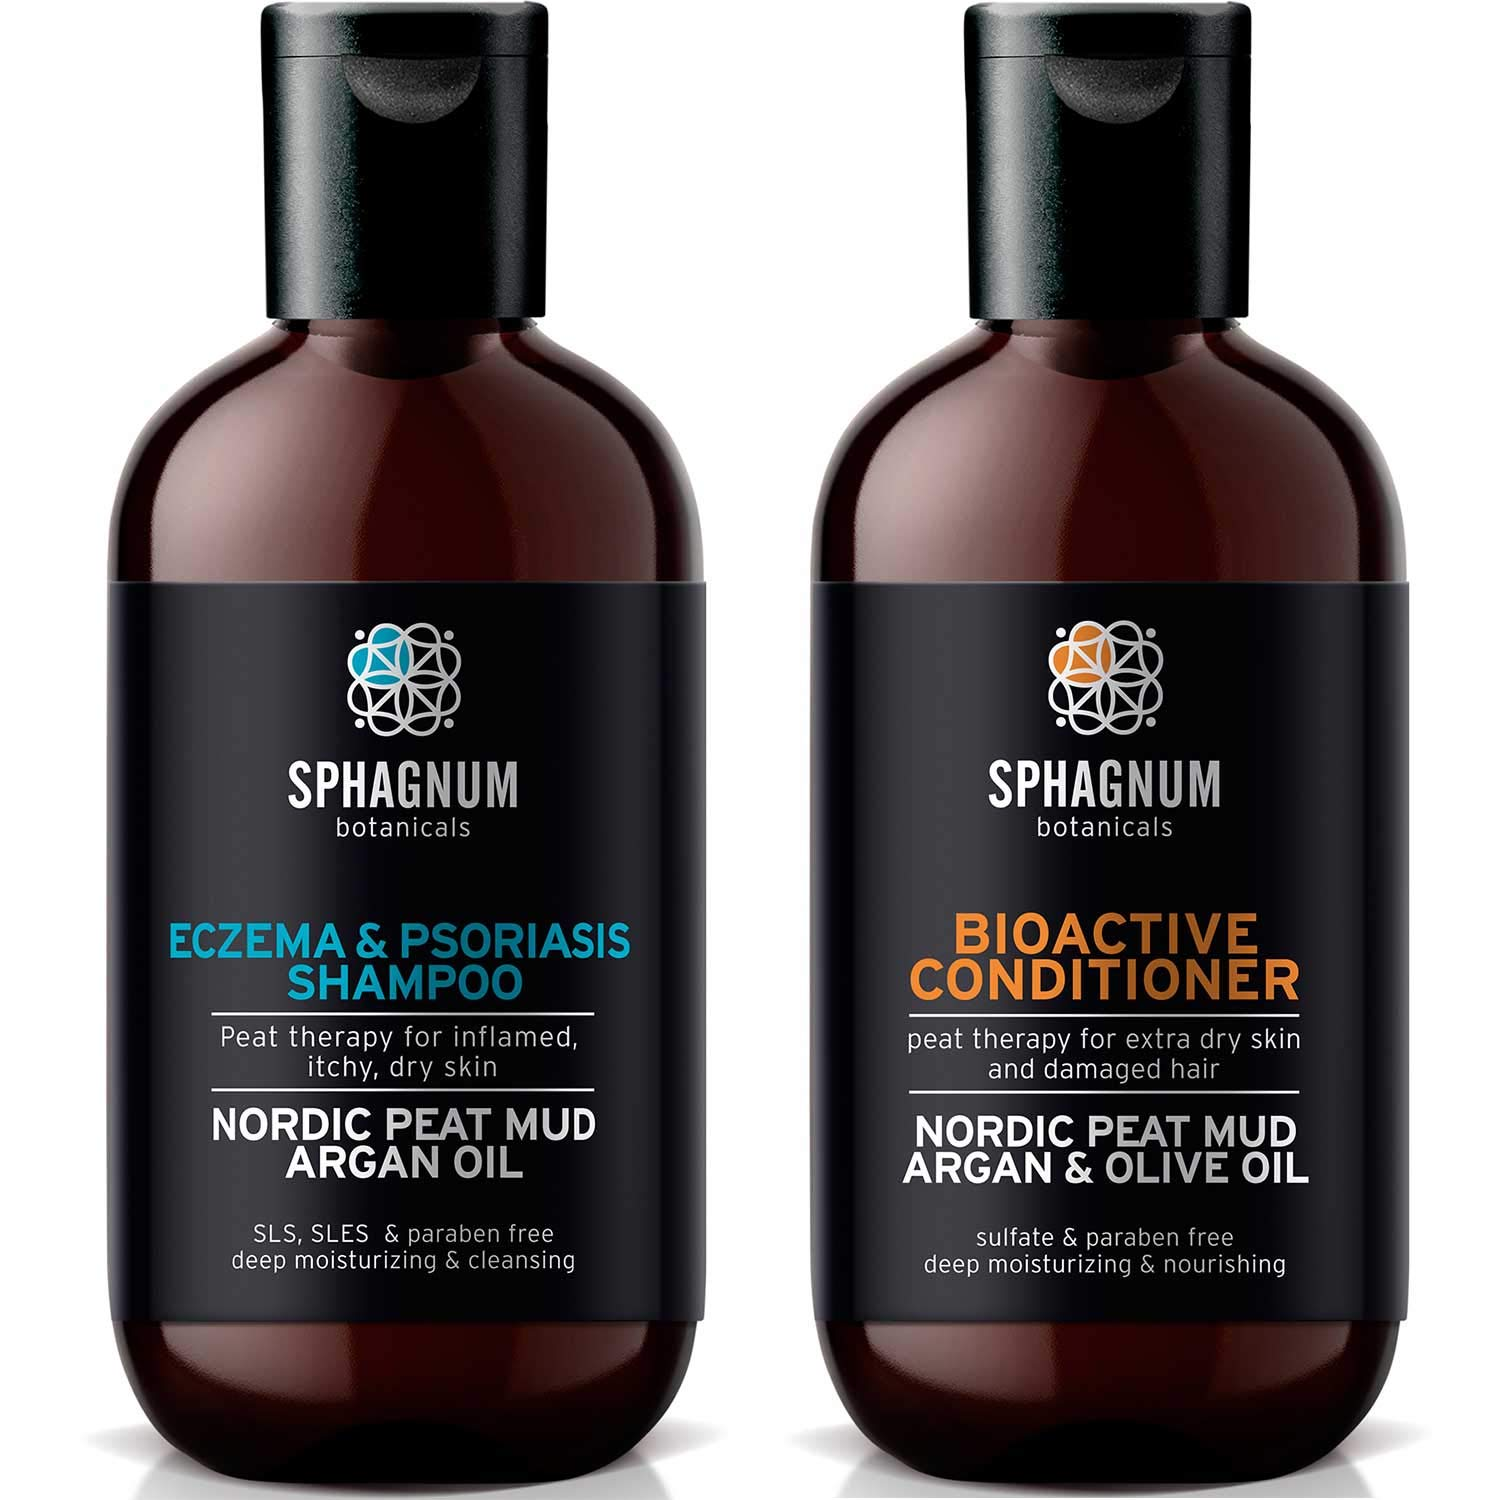 Psoriasis Shampoo and Conditioner Set - Complete Peat Mud Therapy for Itchy Scalp. Natural Healing Peat, Argan and Olive Oil Treatment 100% Free from Cancerous Coal Tar. For Both Men and Women. by Sphagnum Botanicals